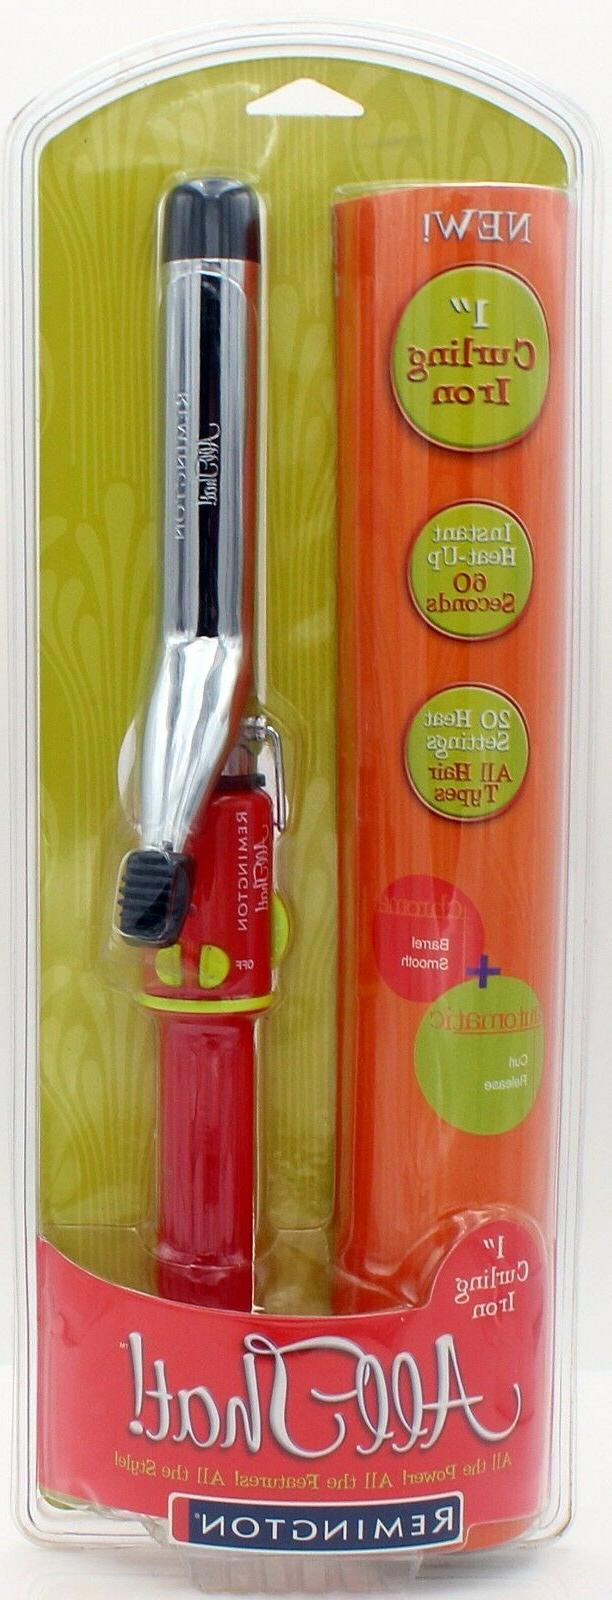 curling iron 2 in 1 straight n